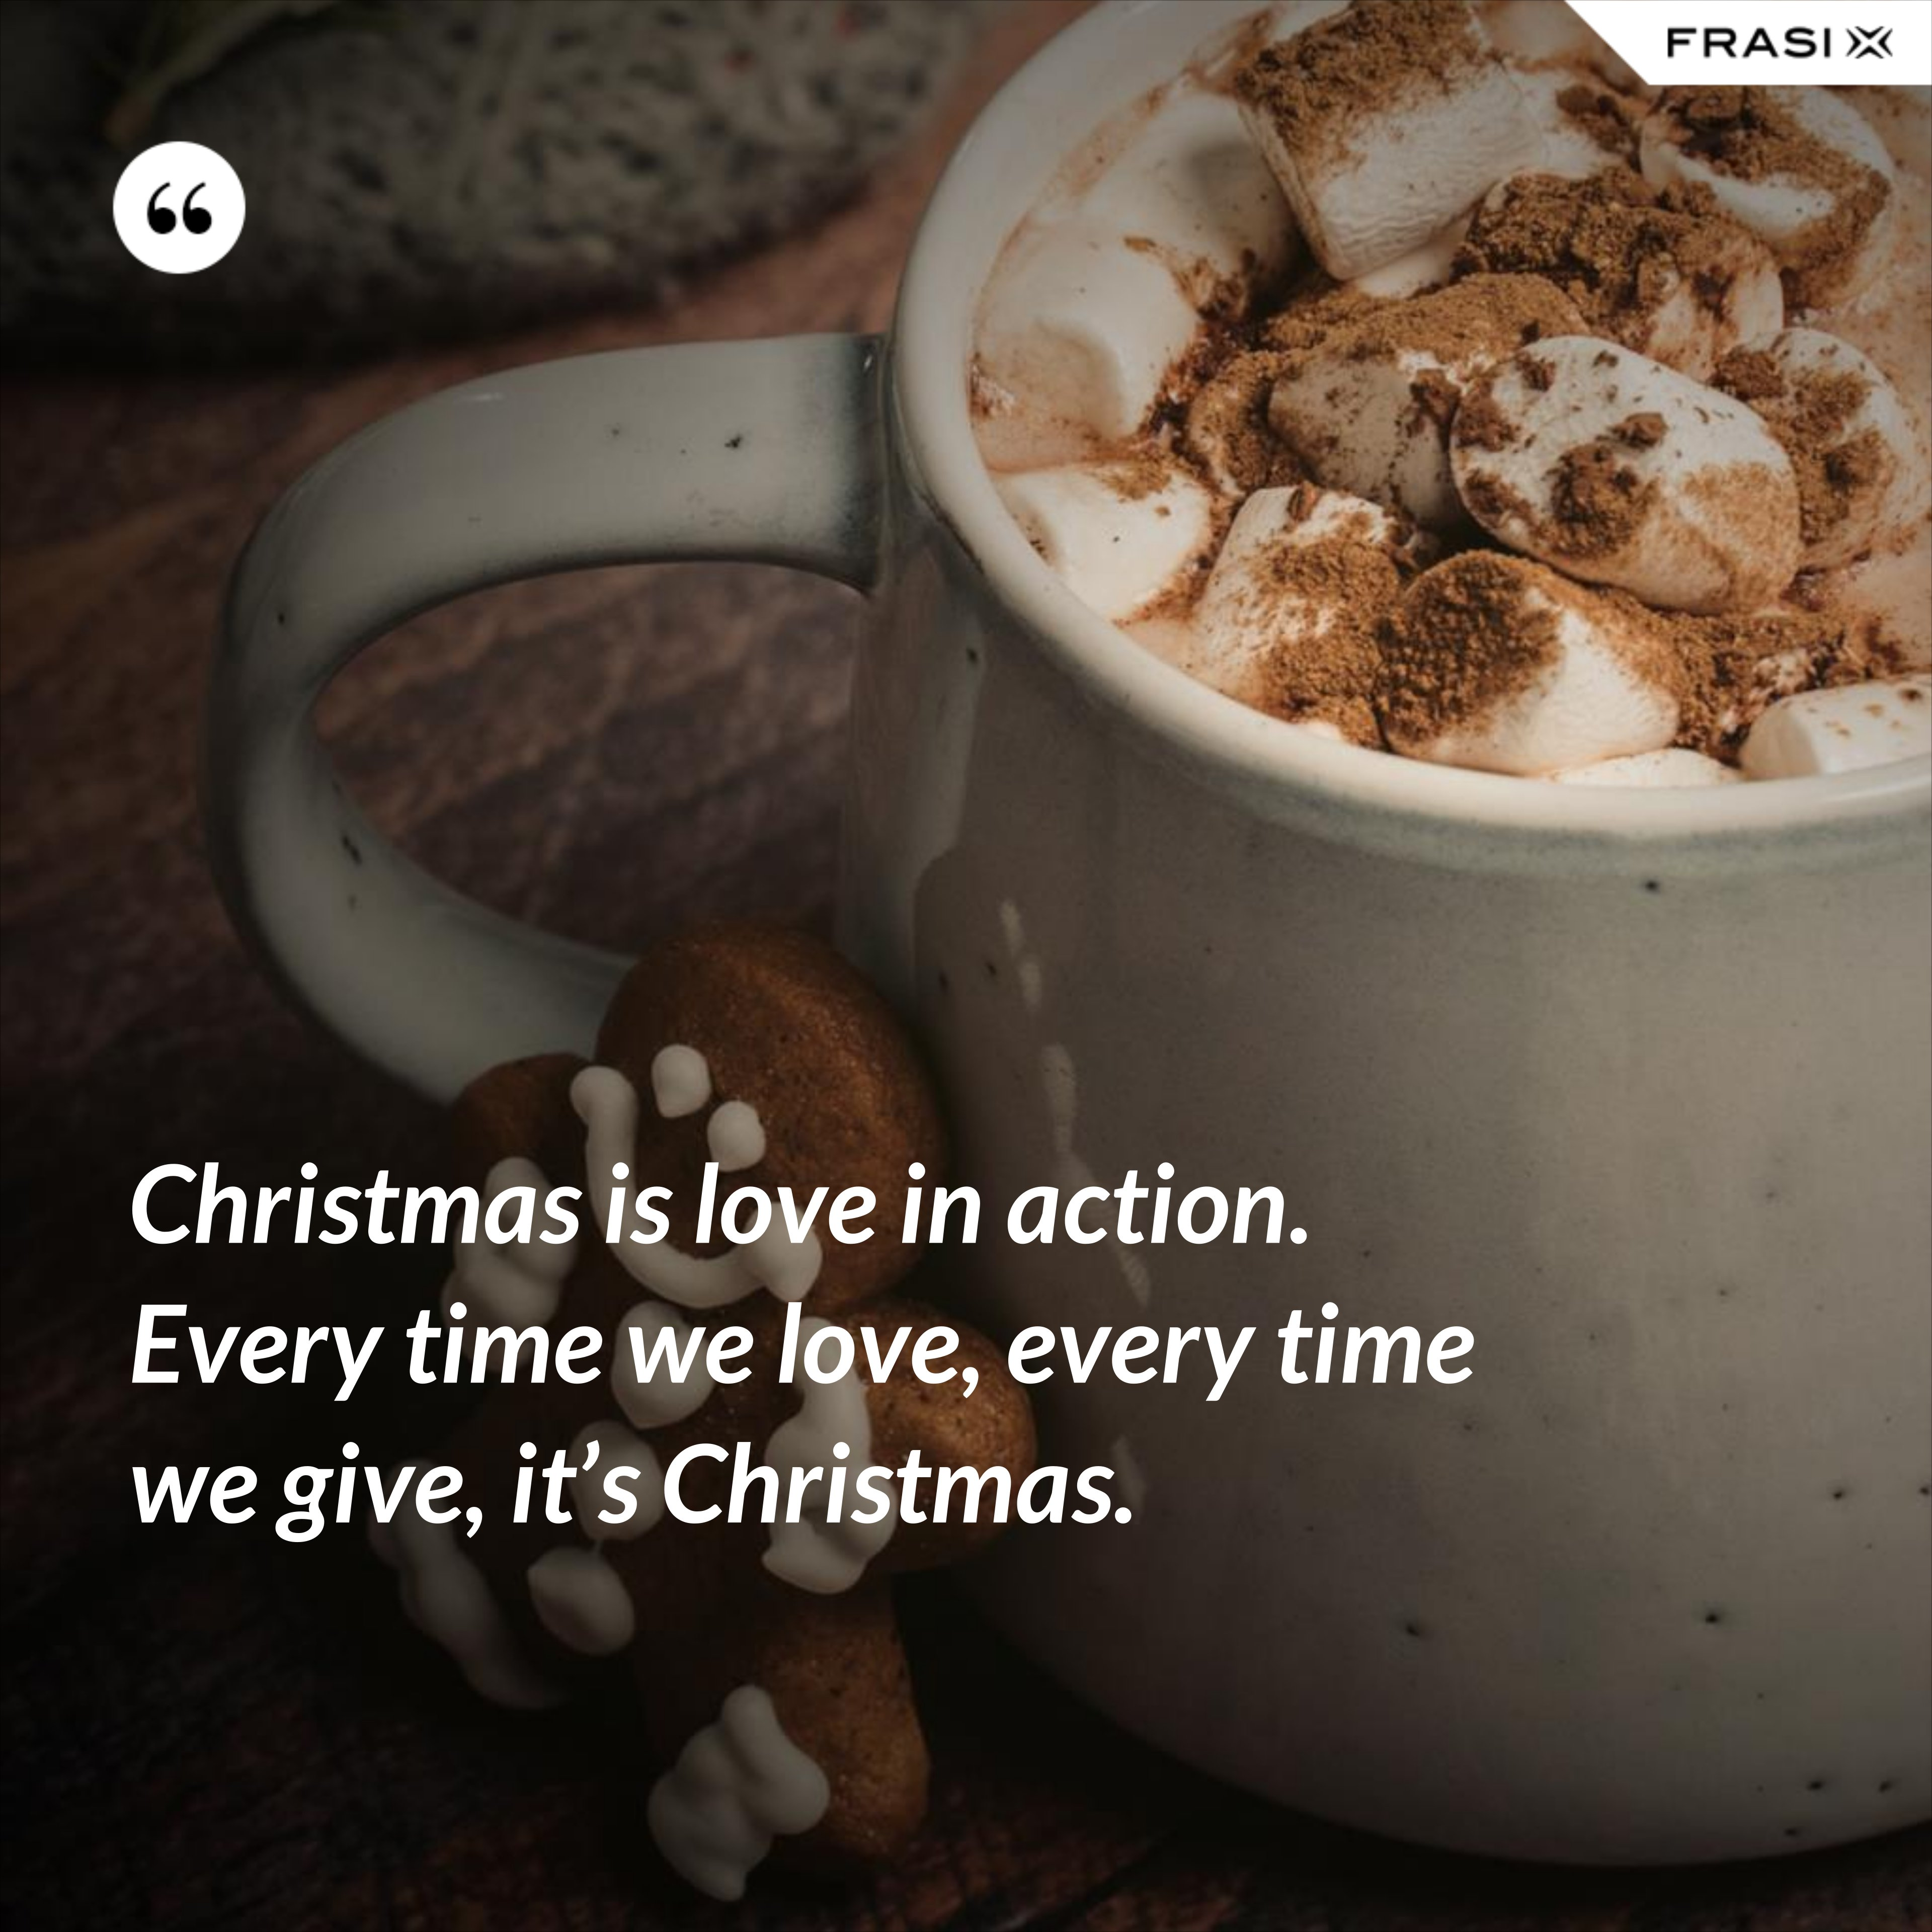 Christmas is love in action. Every time we love, every time we give, it's Christmas. - Anonimo